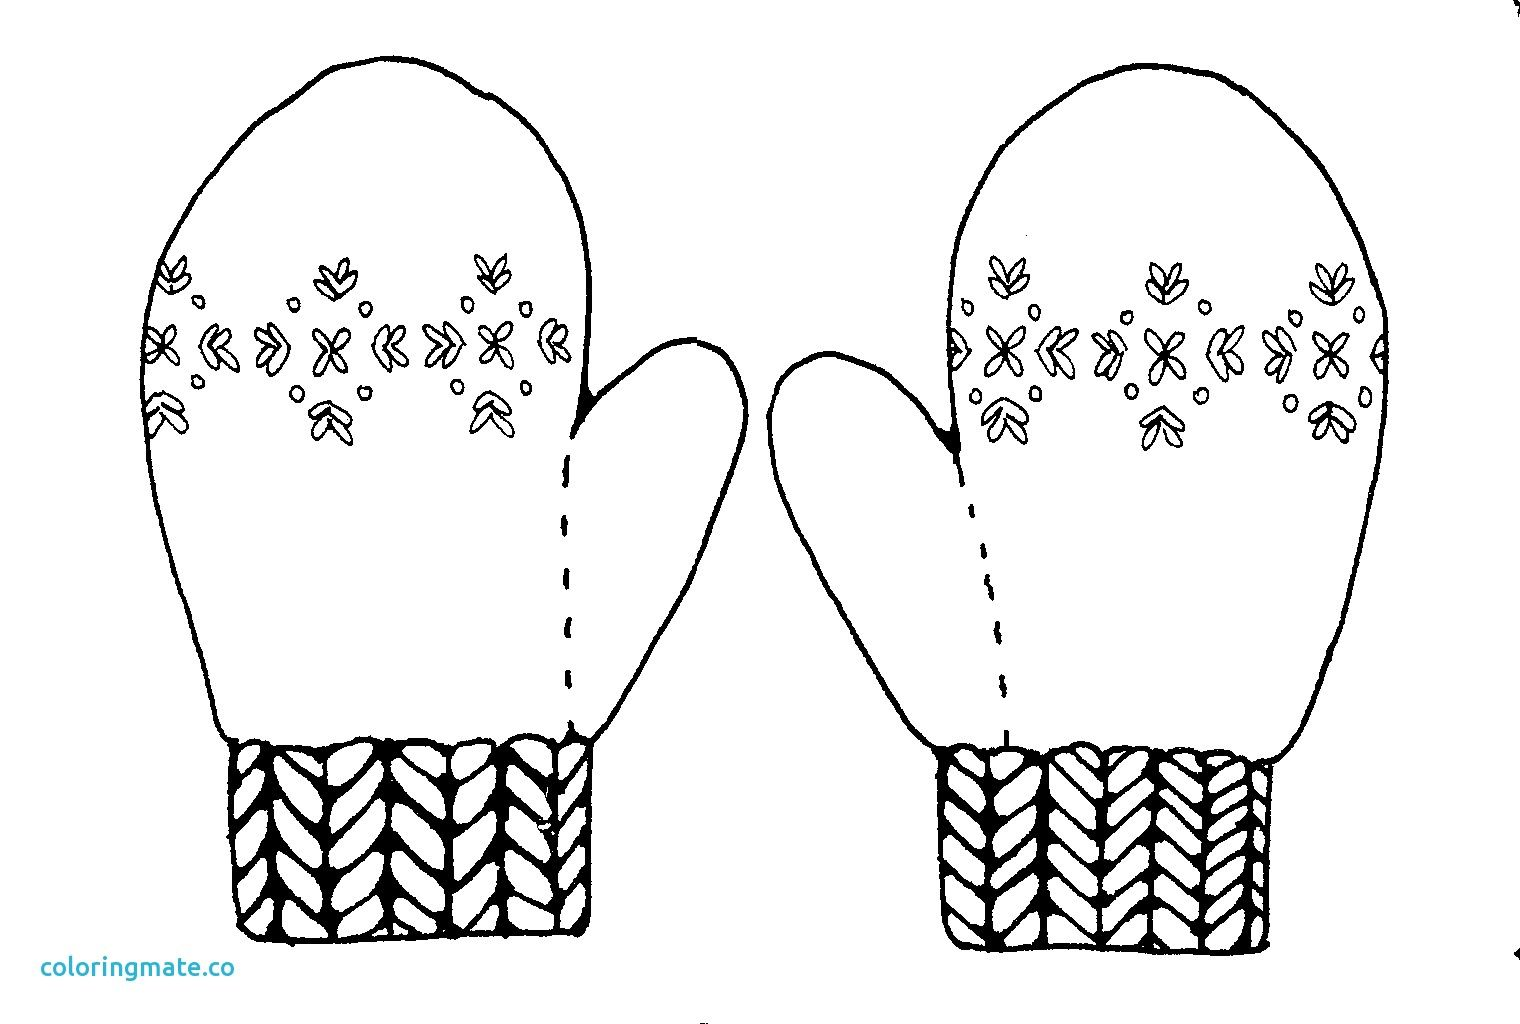 Related Image Coloring Pages Hand Warmers Black And White Mittens